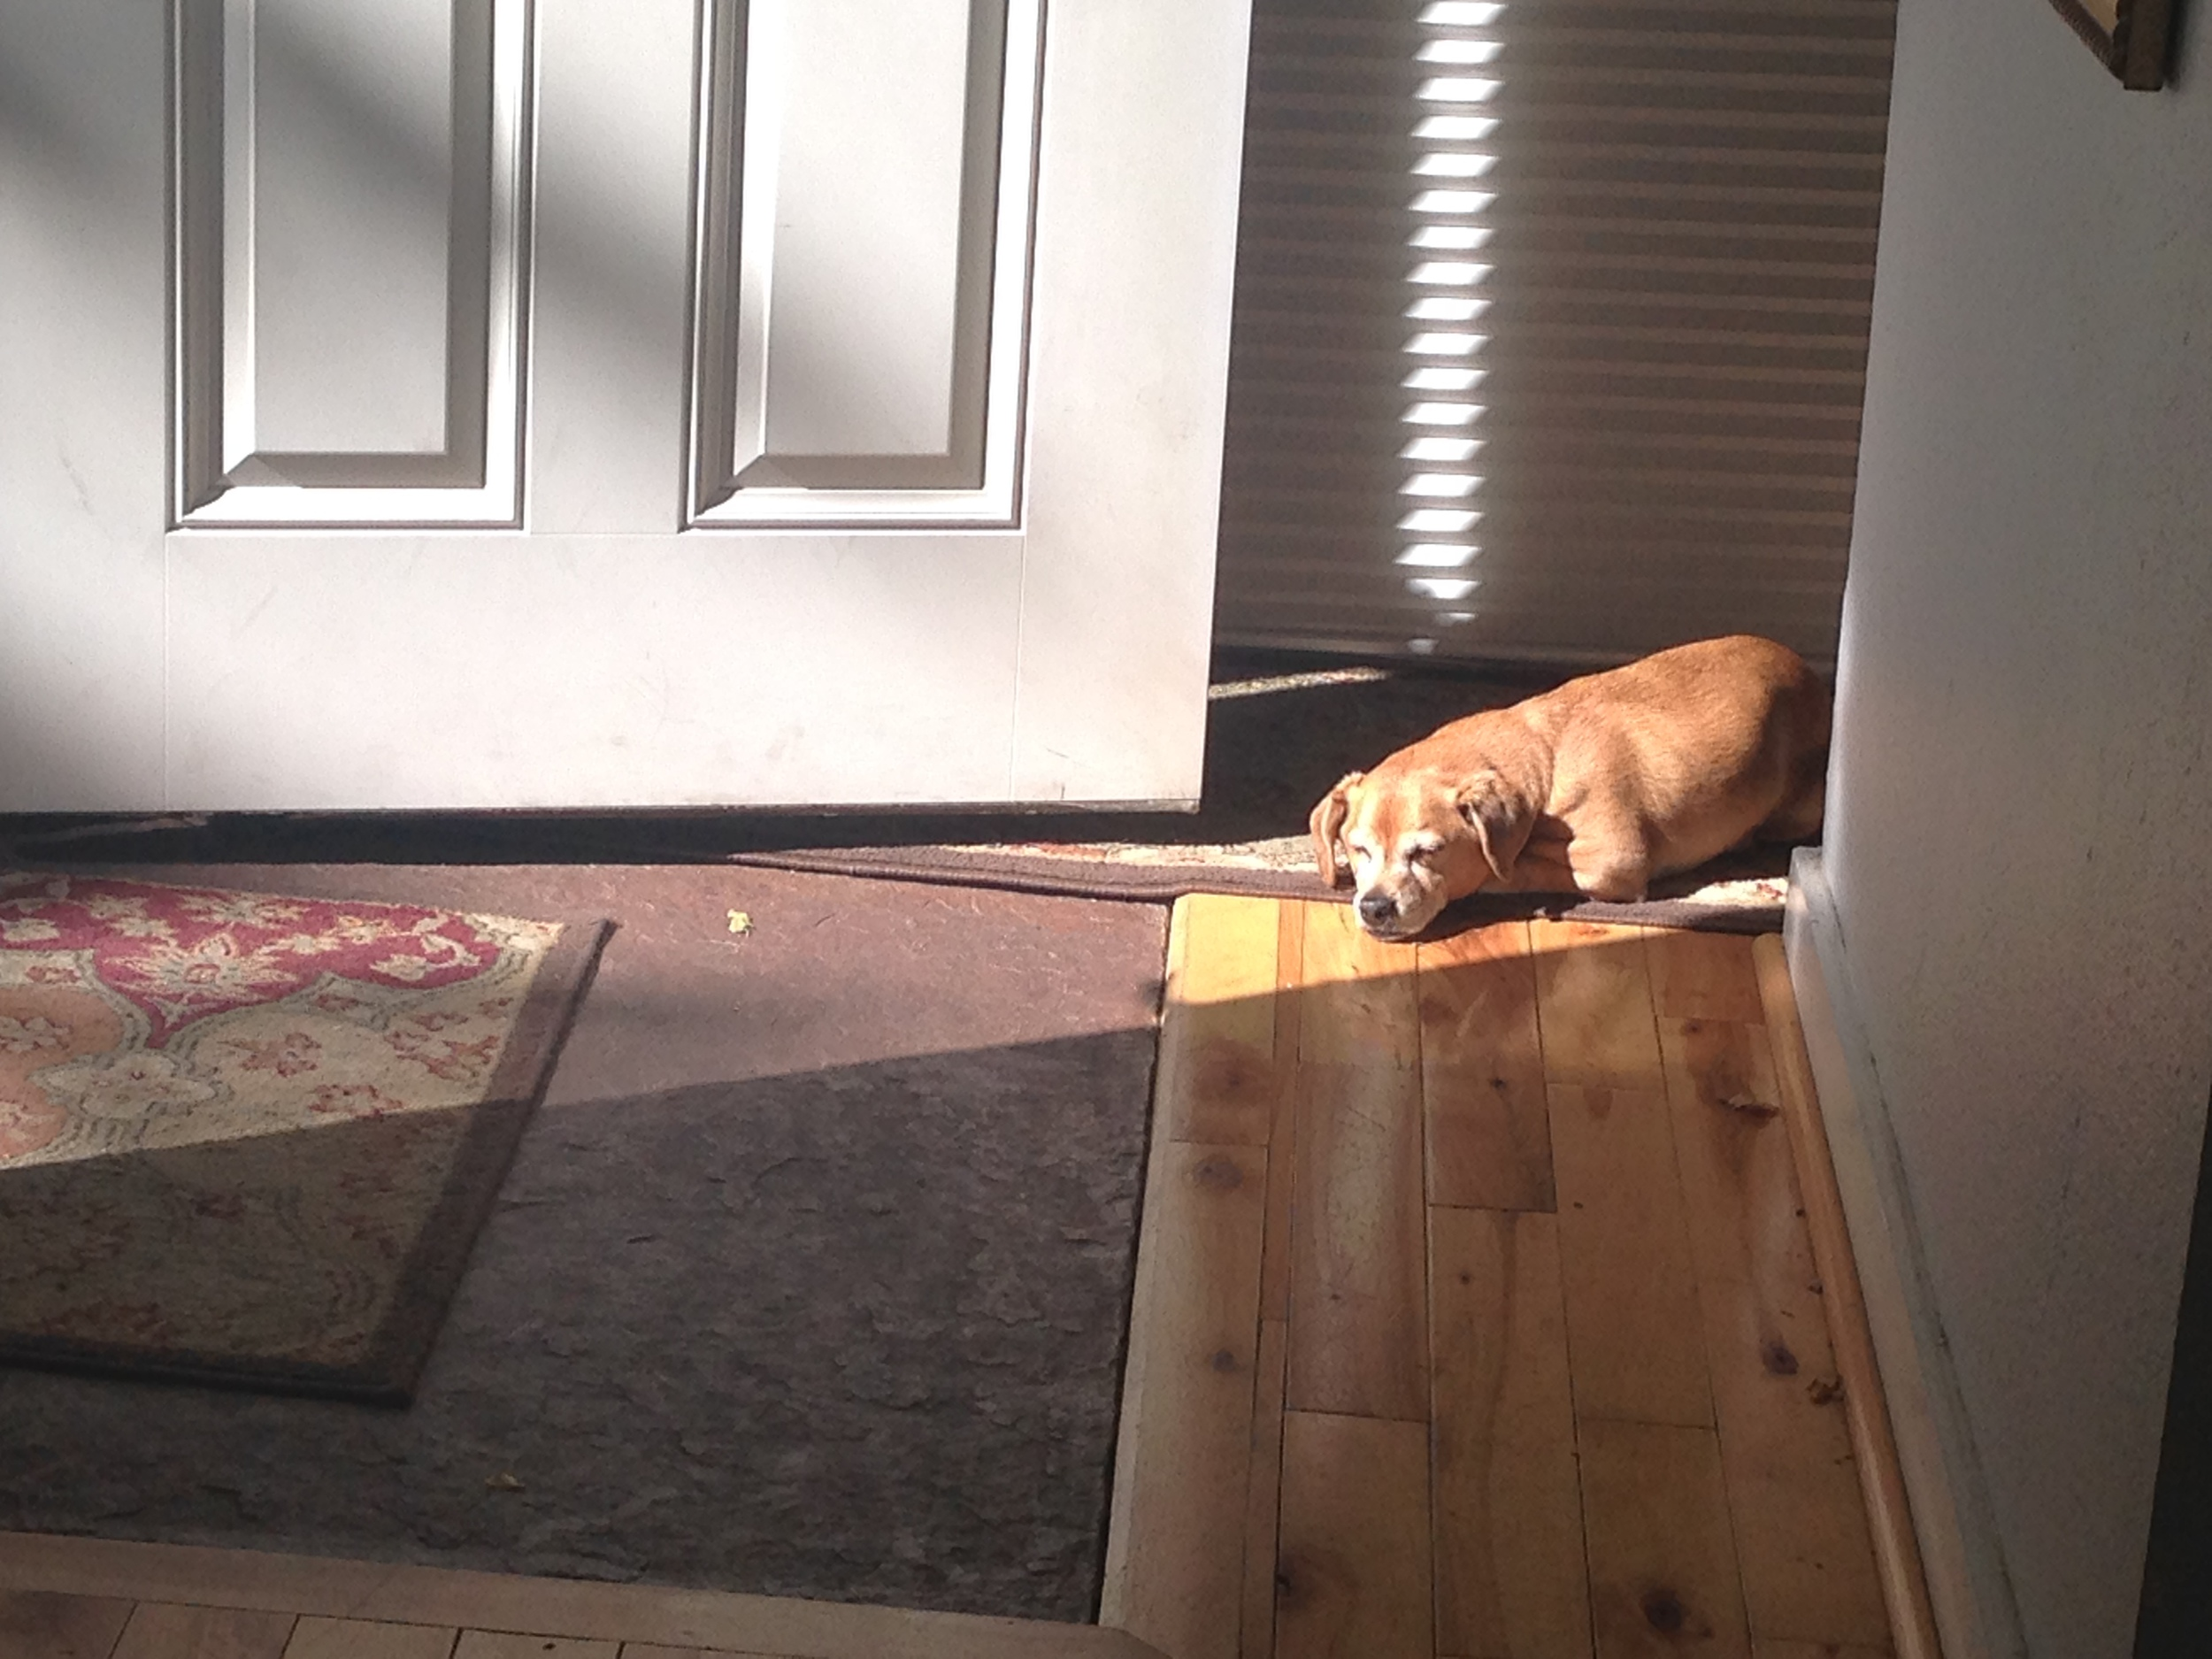 Dogface is grateful for the little things, like his sunny spot.